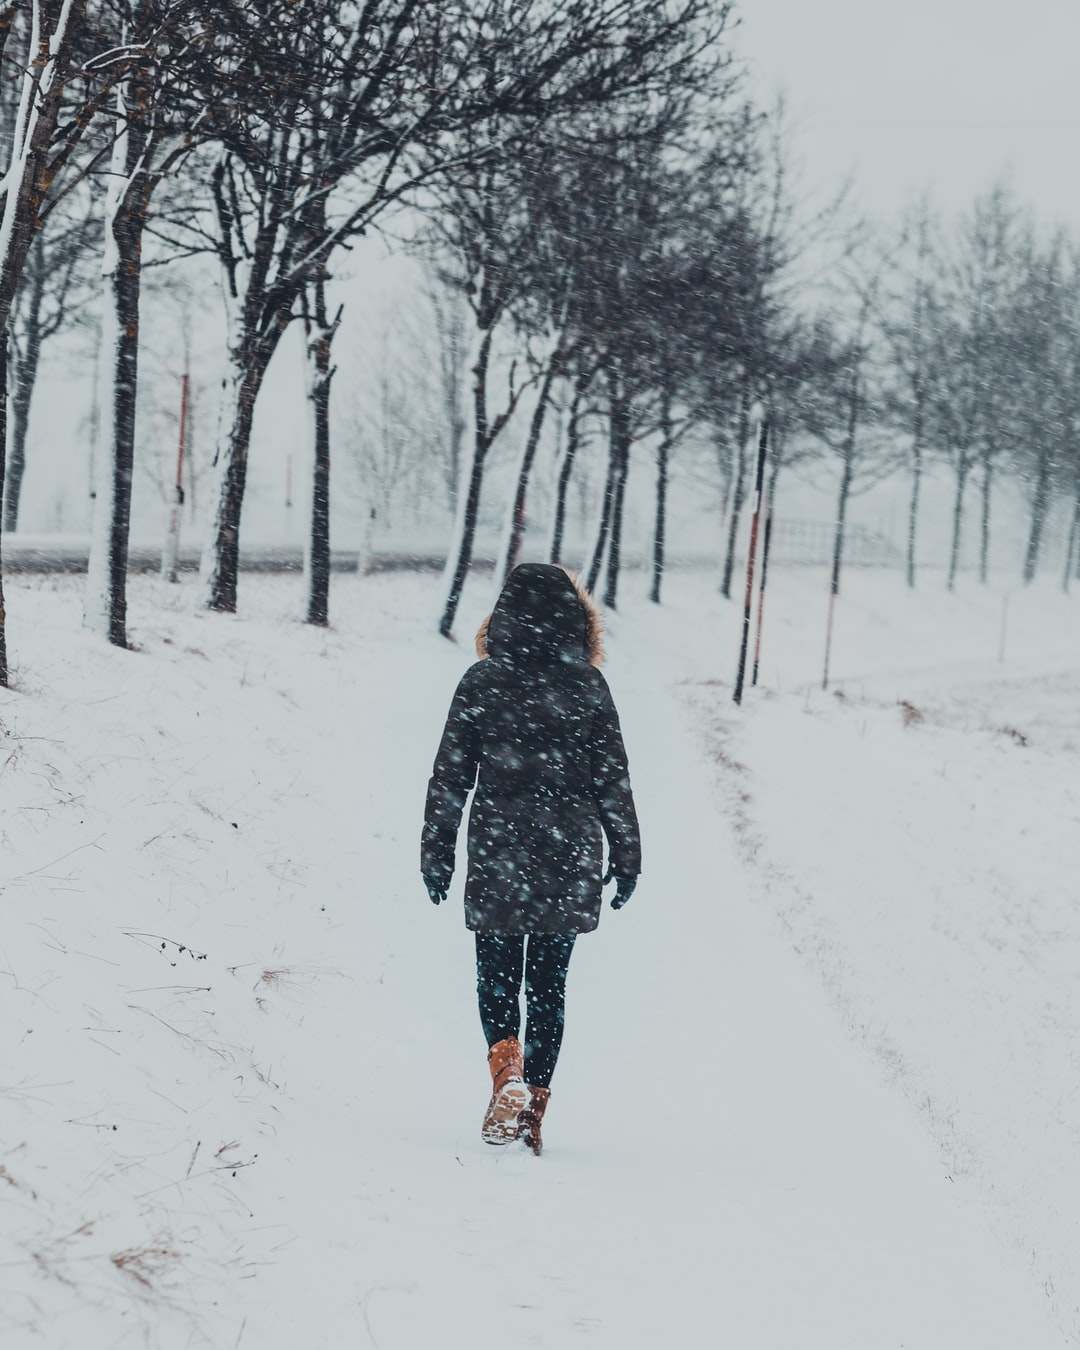 My girlfriend taking a walk in a snowstorm near Turracher Höhe, one of Austria's greates ski parks.  The photo was shot on my Canon 6D with the Canon 70-200 F4L lens.